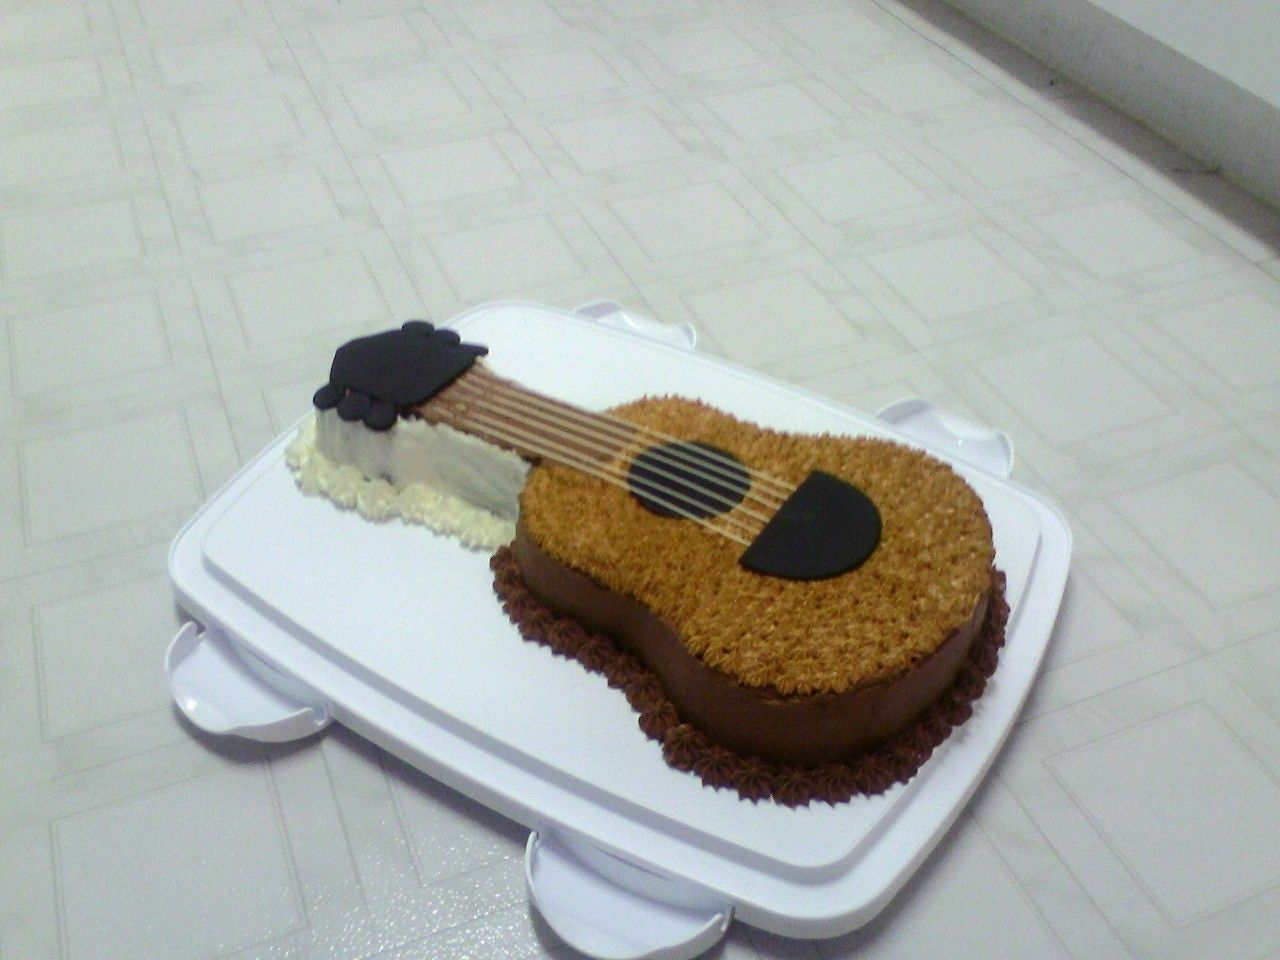 Guitar Cake My sister plays the guitar, so I thought I'd try this one for her birthday. There are a few things I'd do differently next time,...